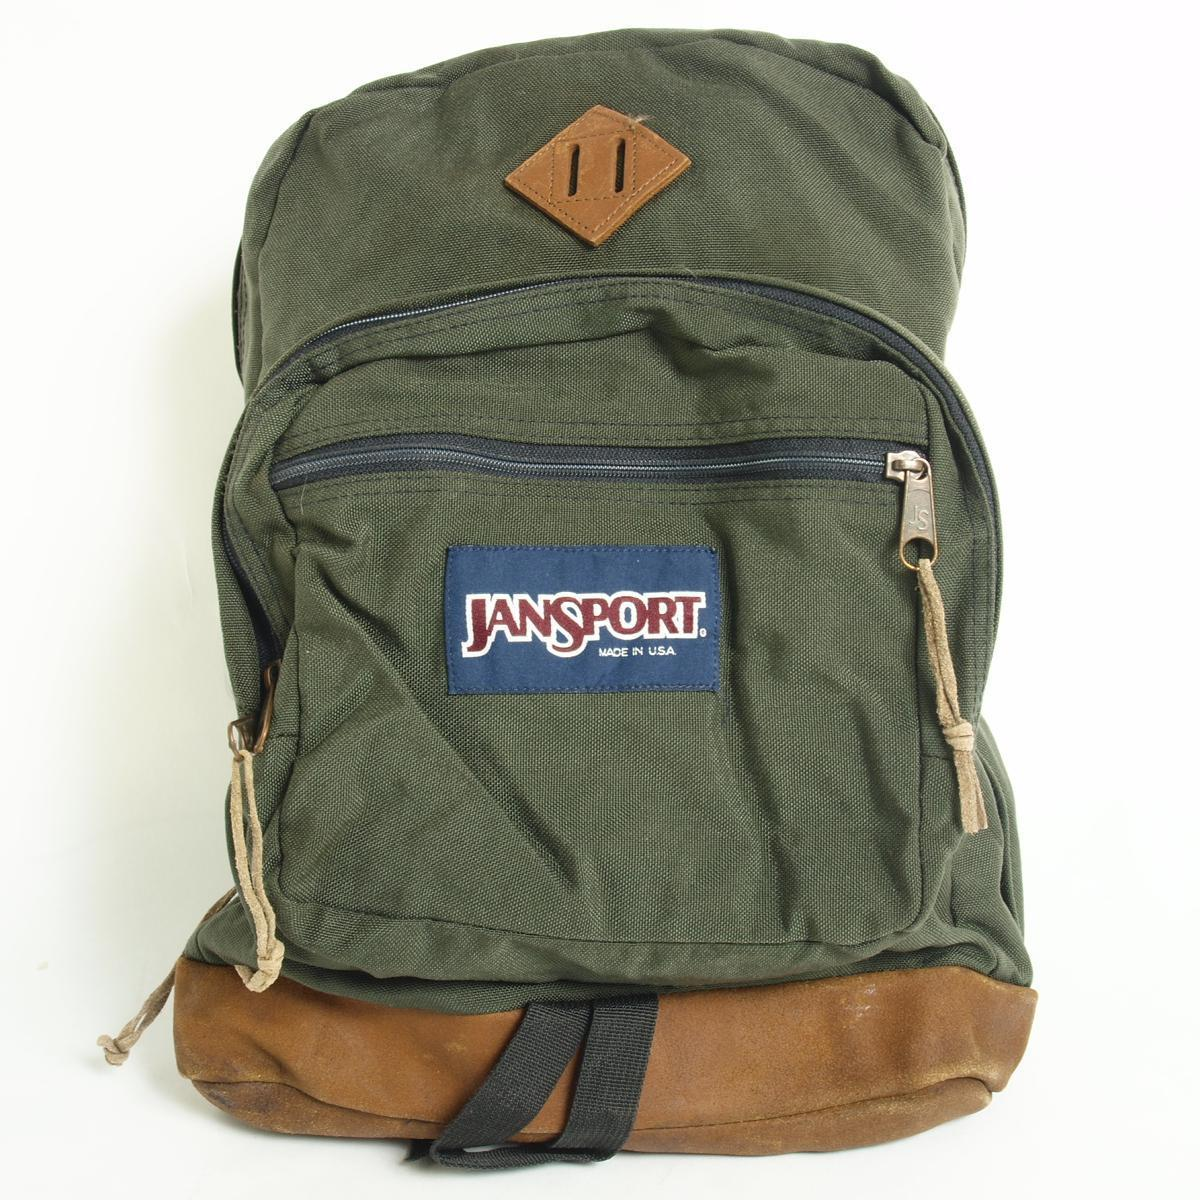 Backpack Tools - Fashion Backpacks Collection | - Part 273